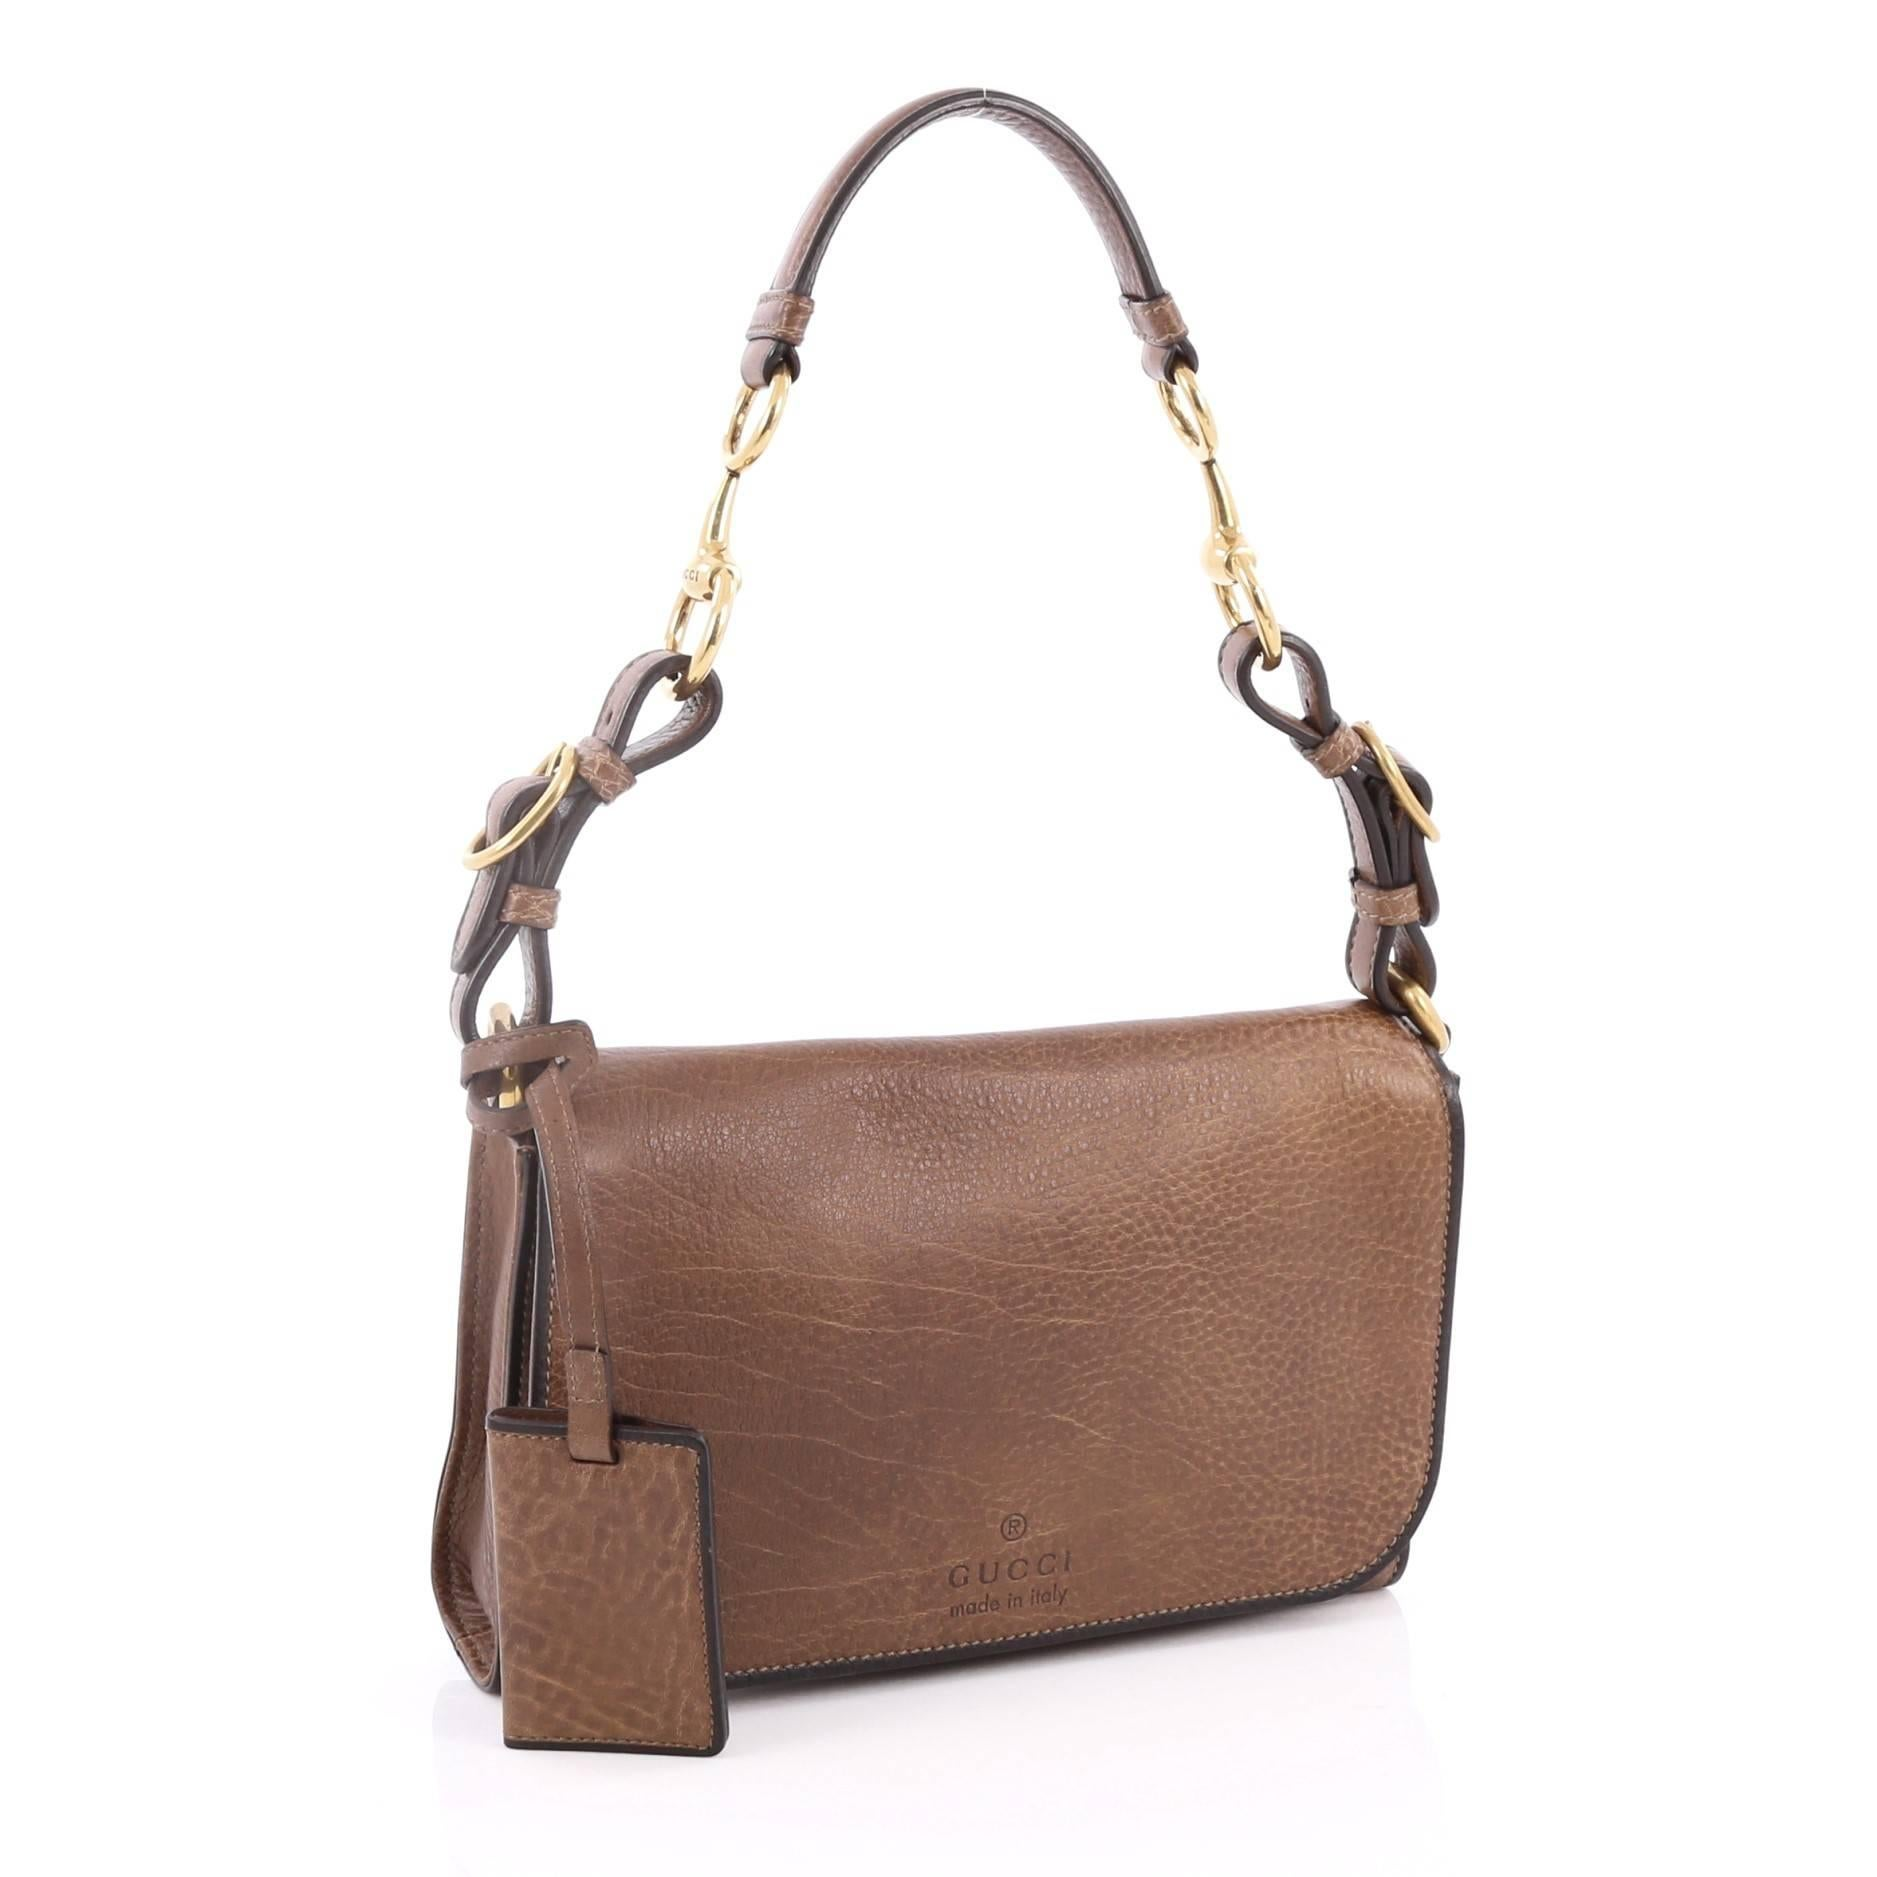 66346010a389 Gucci Harness Shoulder Bag Distressed Pebbled Leather Small at 1stdibs